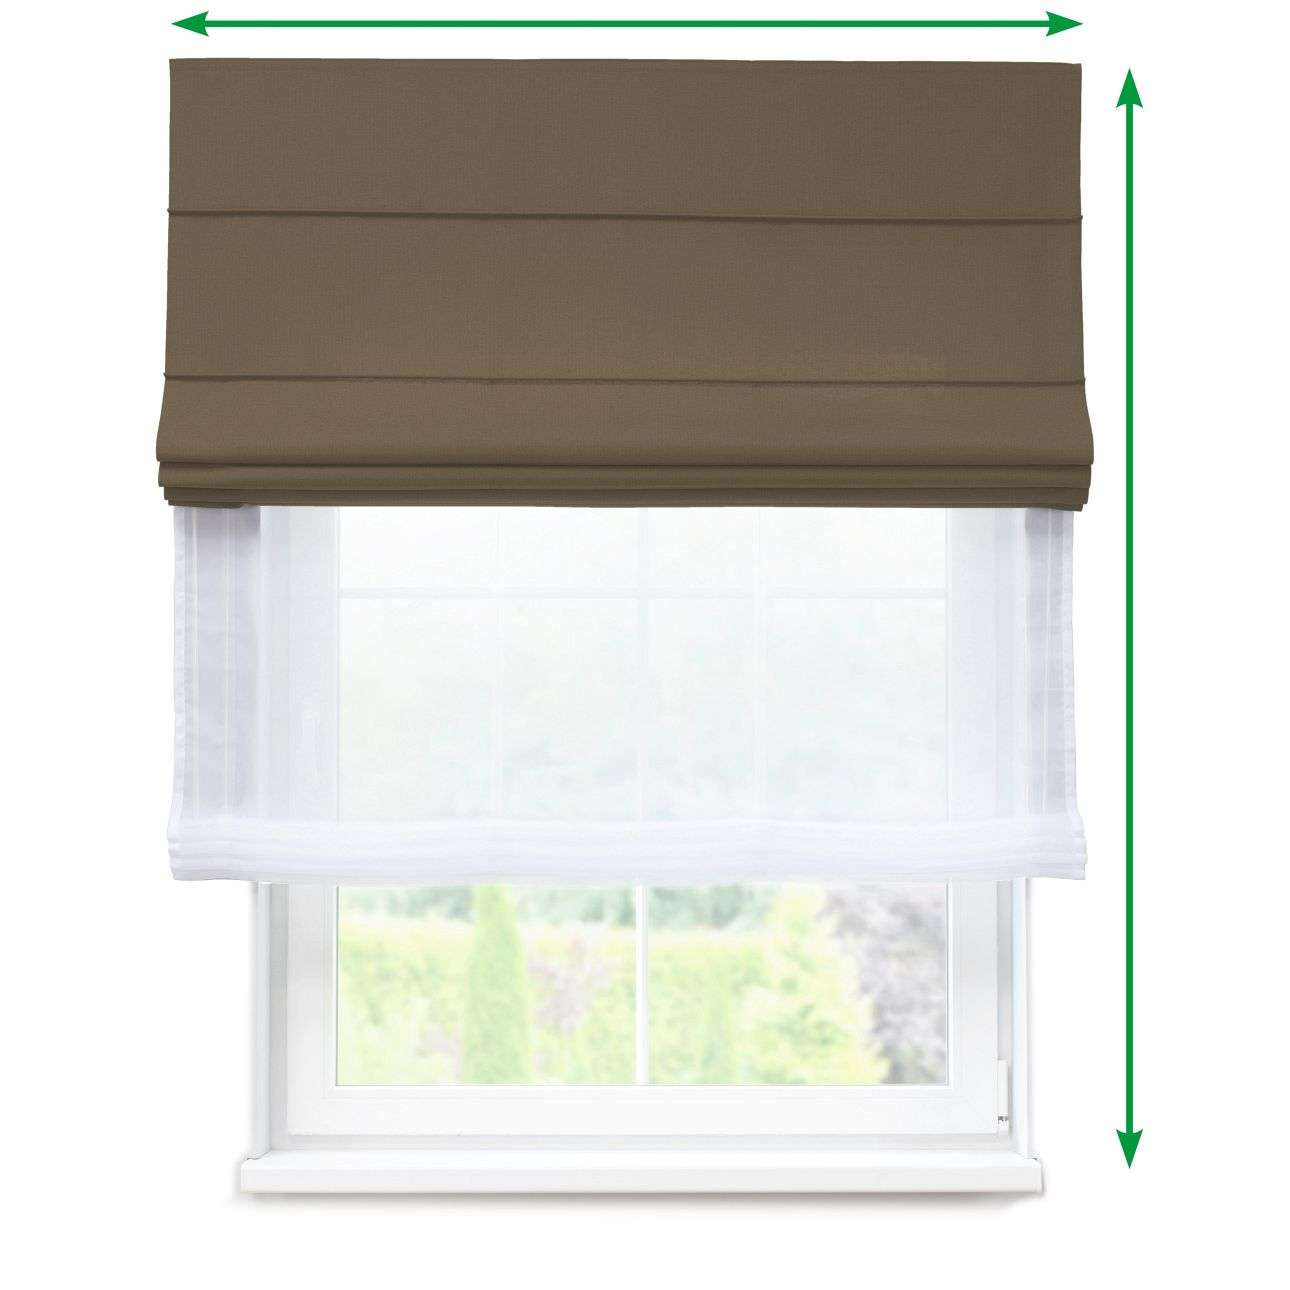 Voile and fabric roman blind (DUO II) in collection Milano, fabric: 150-39